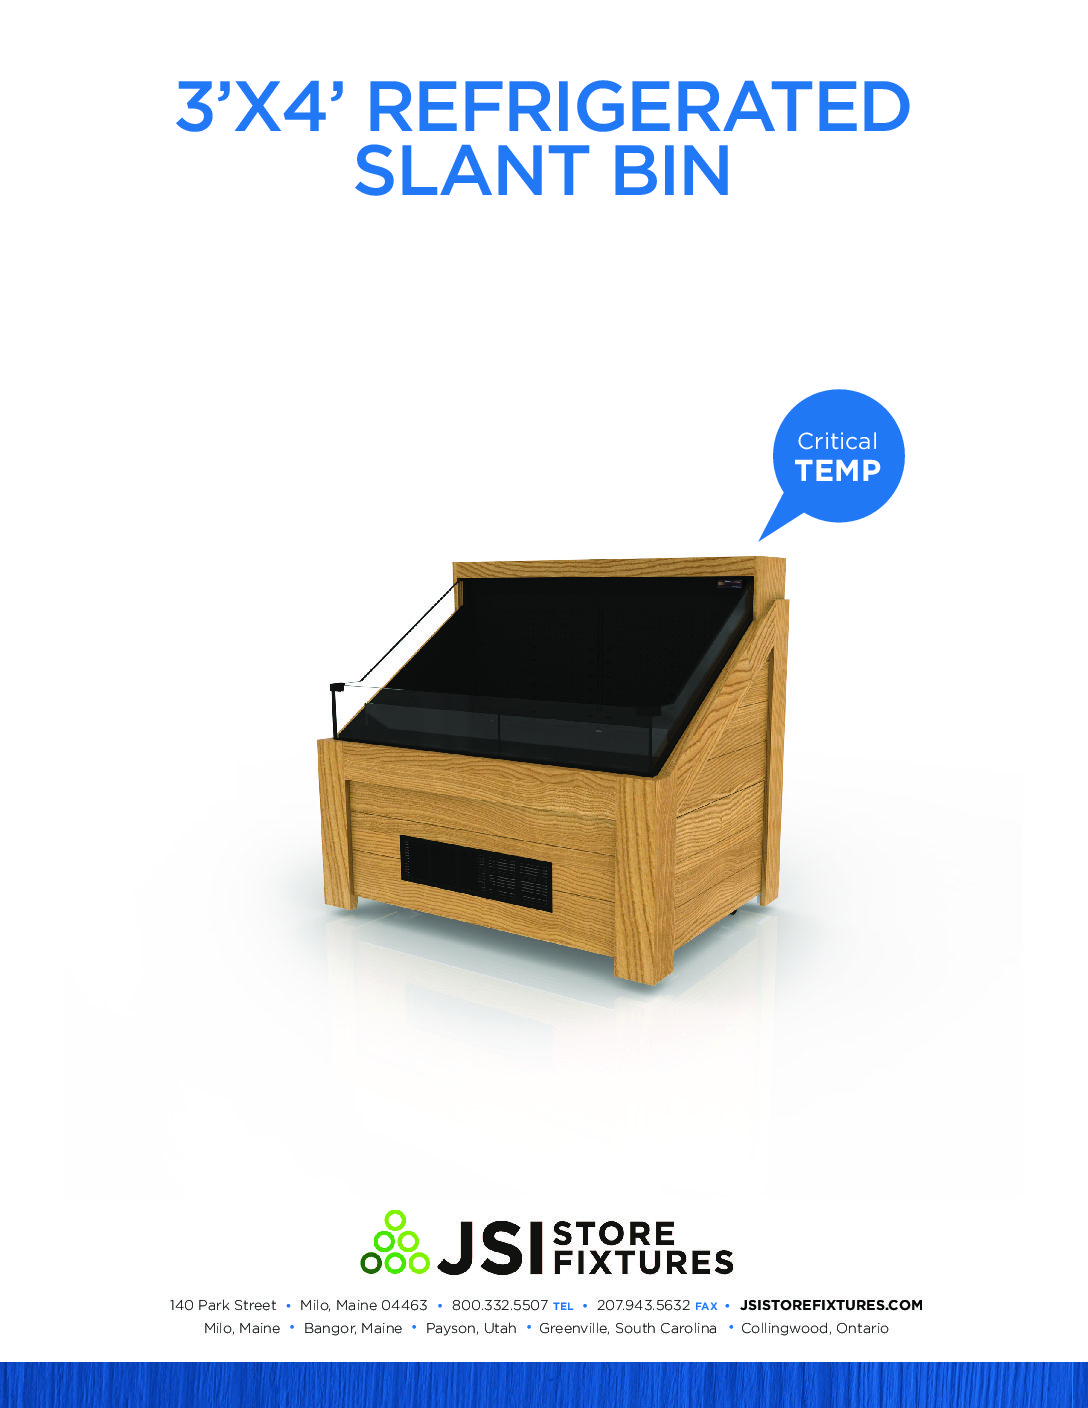 3'x4' Refrigerated Slant Bin Spec Sheet